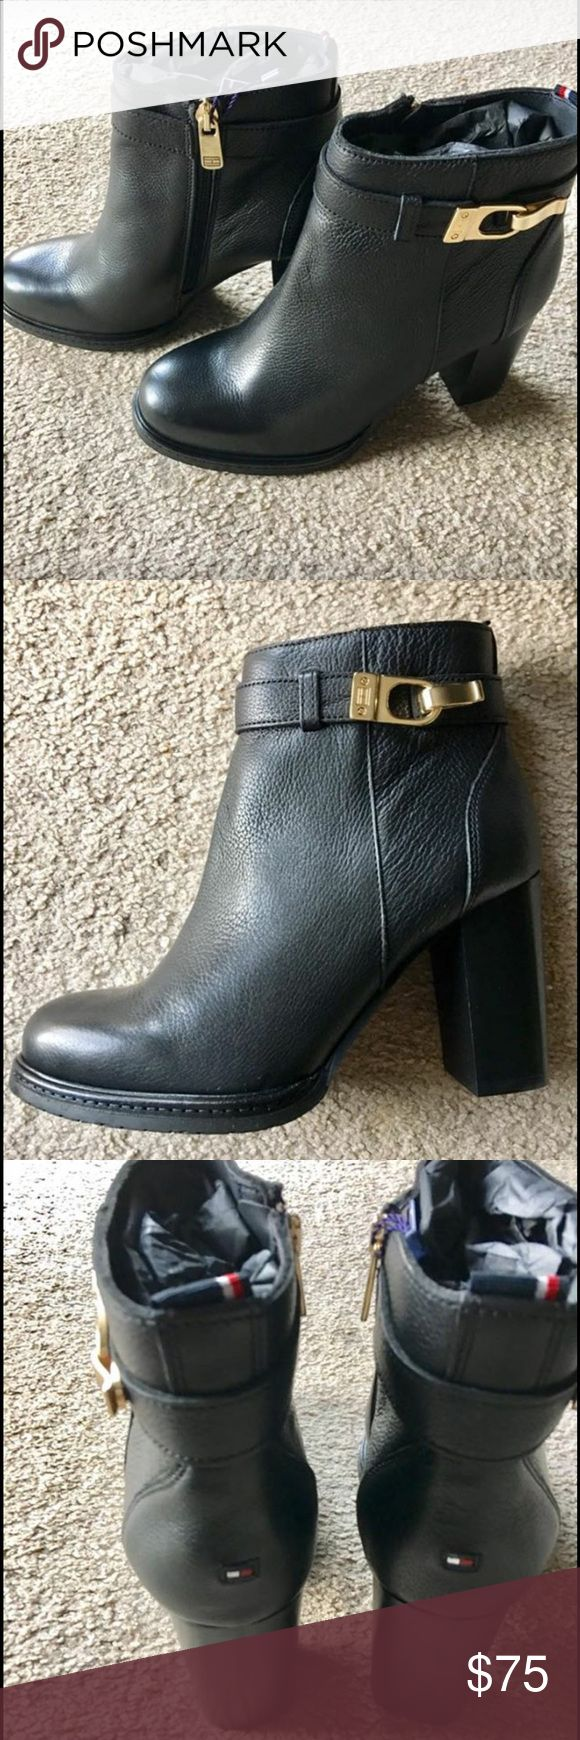 Women's boots Brand new authentic Tommy Hilfiger shoes. These shoes are considered booties. Never worn, size 39, black, zip up, with gold buckle & in original box. Heels on the shoes are about 3 inches, chunky heel, with style & comfort. Bought these from Tommy Hilfiger Store. Retail price is $199, asking for less Tommy Hilfiger Shoes Ankle Boots & Booties